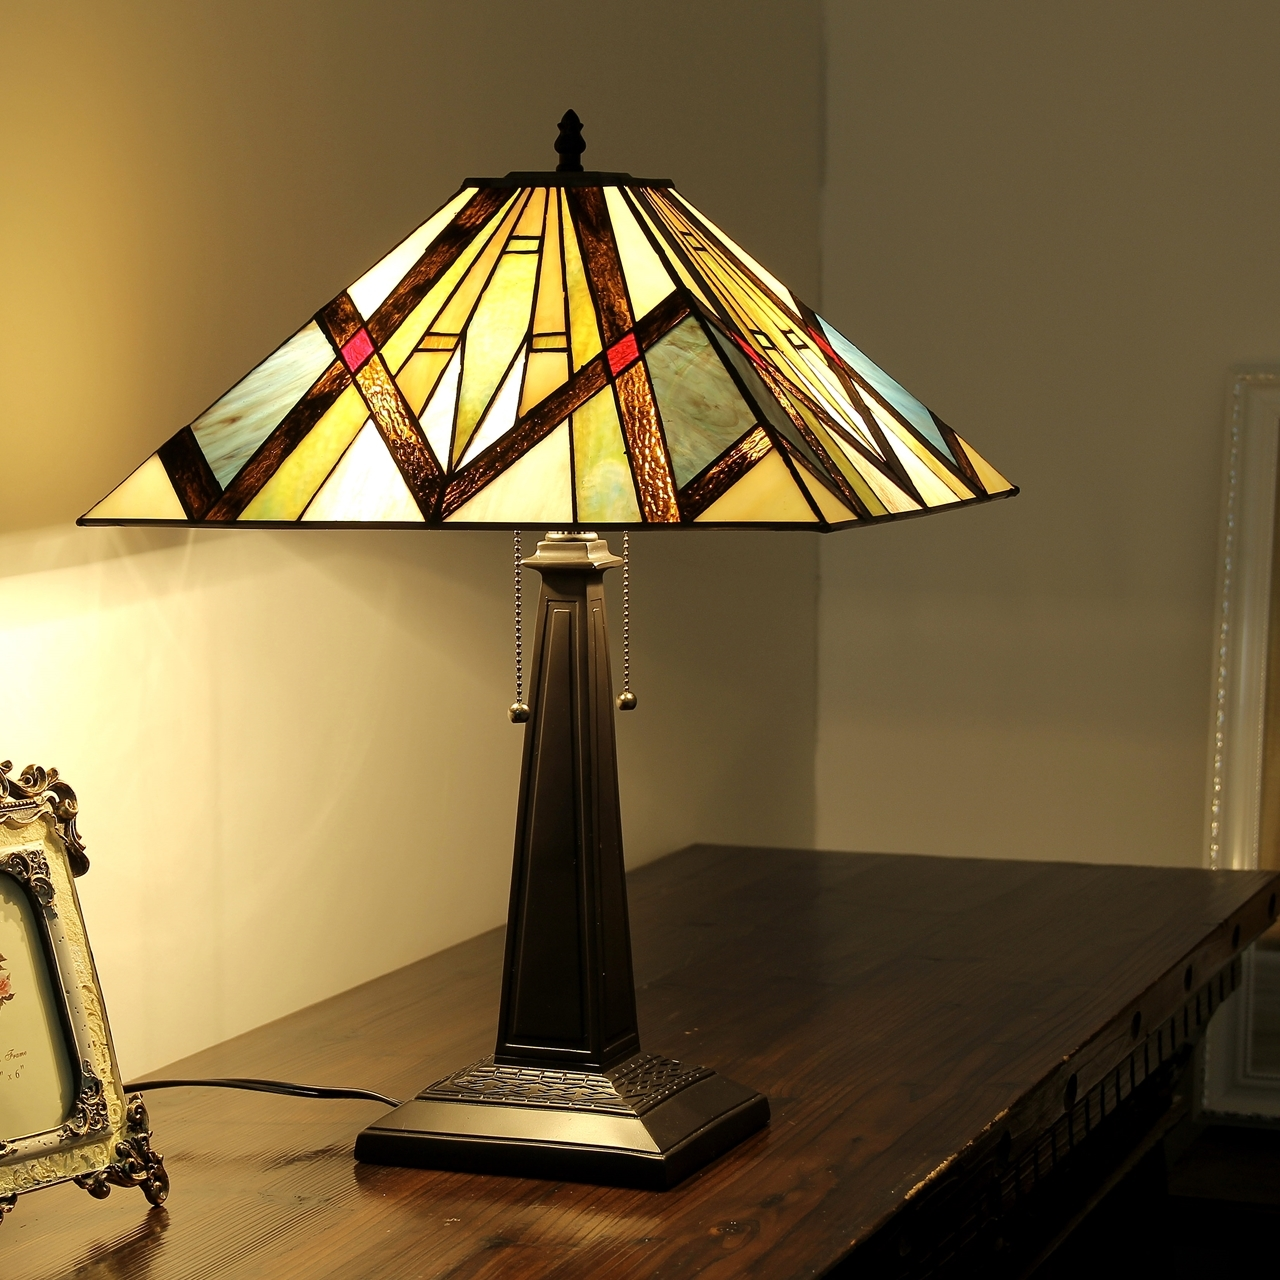 Chloe lighting inc tiffany lamp tiffany lamps tiffany style chloe lighting bedivere tiffany style 2 light mission table lamp 16 shade geotapseo Choice Image